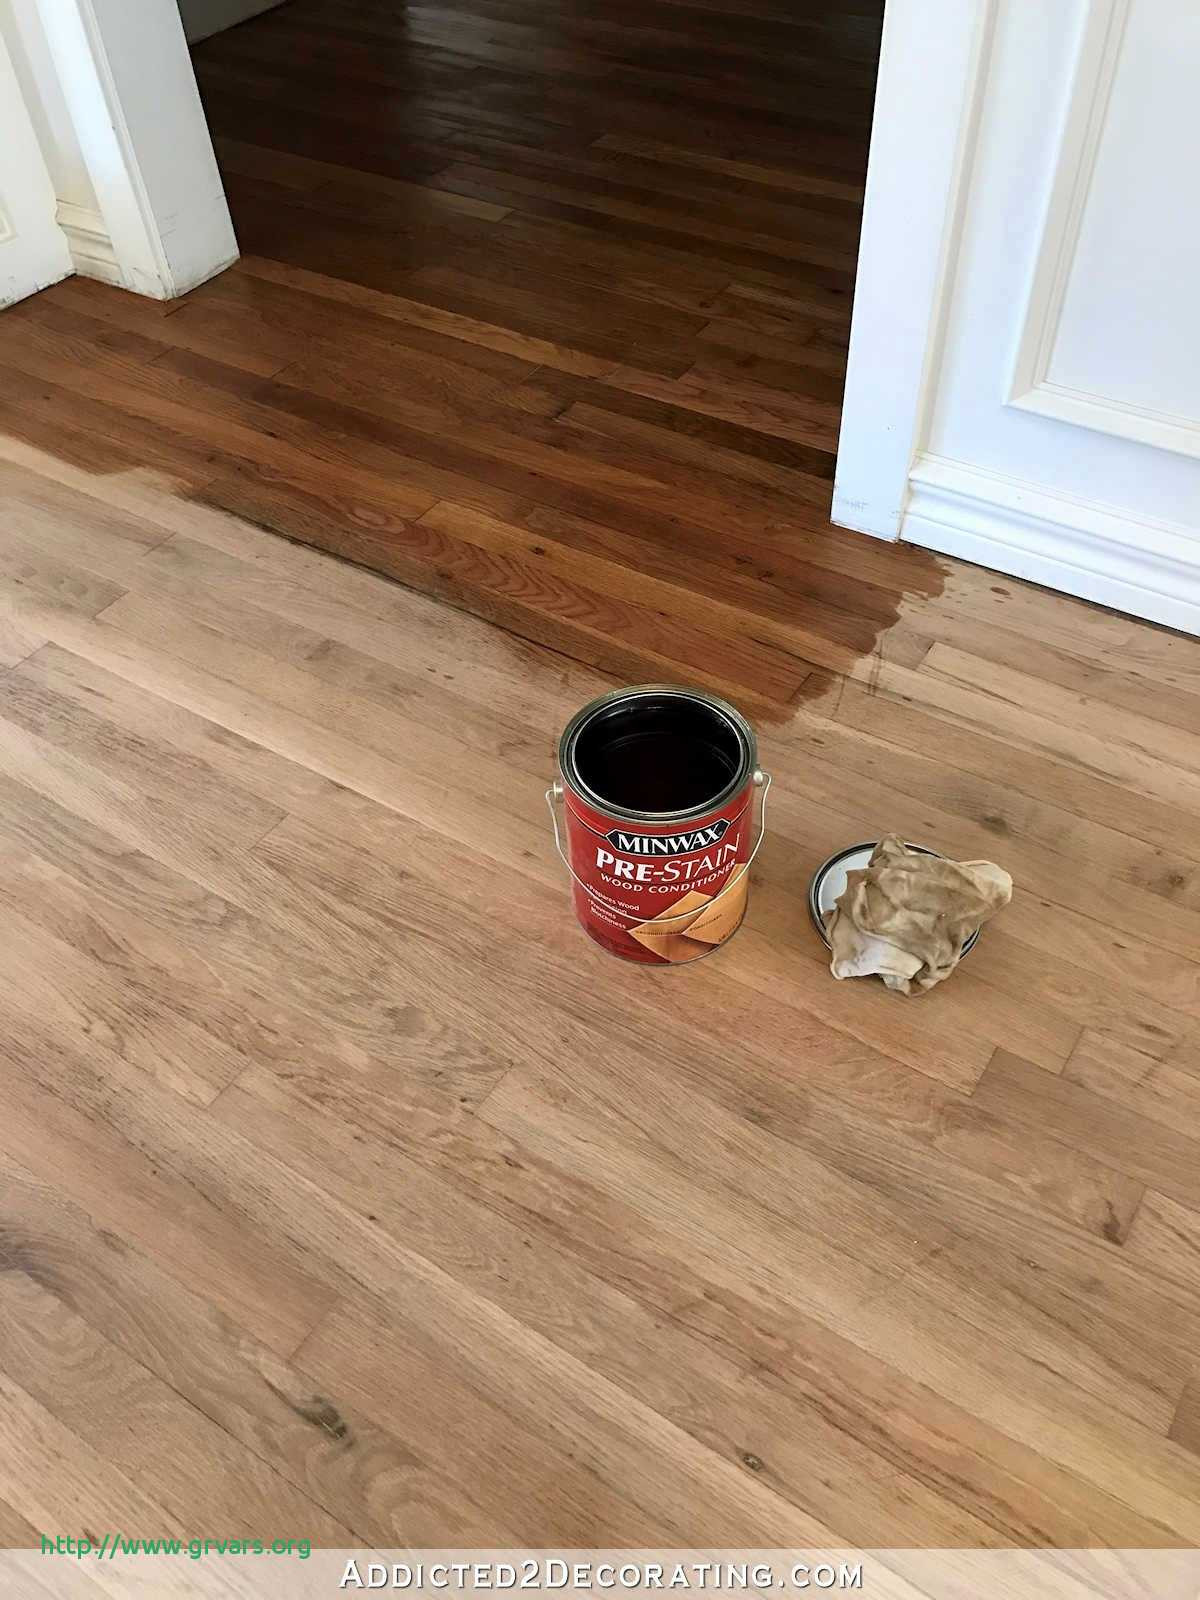 how much does staining hardwood floors cost of 19 frais how much does it cost to put hardwood floors in ideas blog for related post where to buy hardwood flooring inspirational 0d grace place barnegat from hardwood flooring los